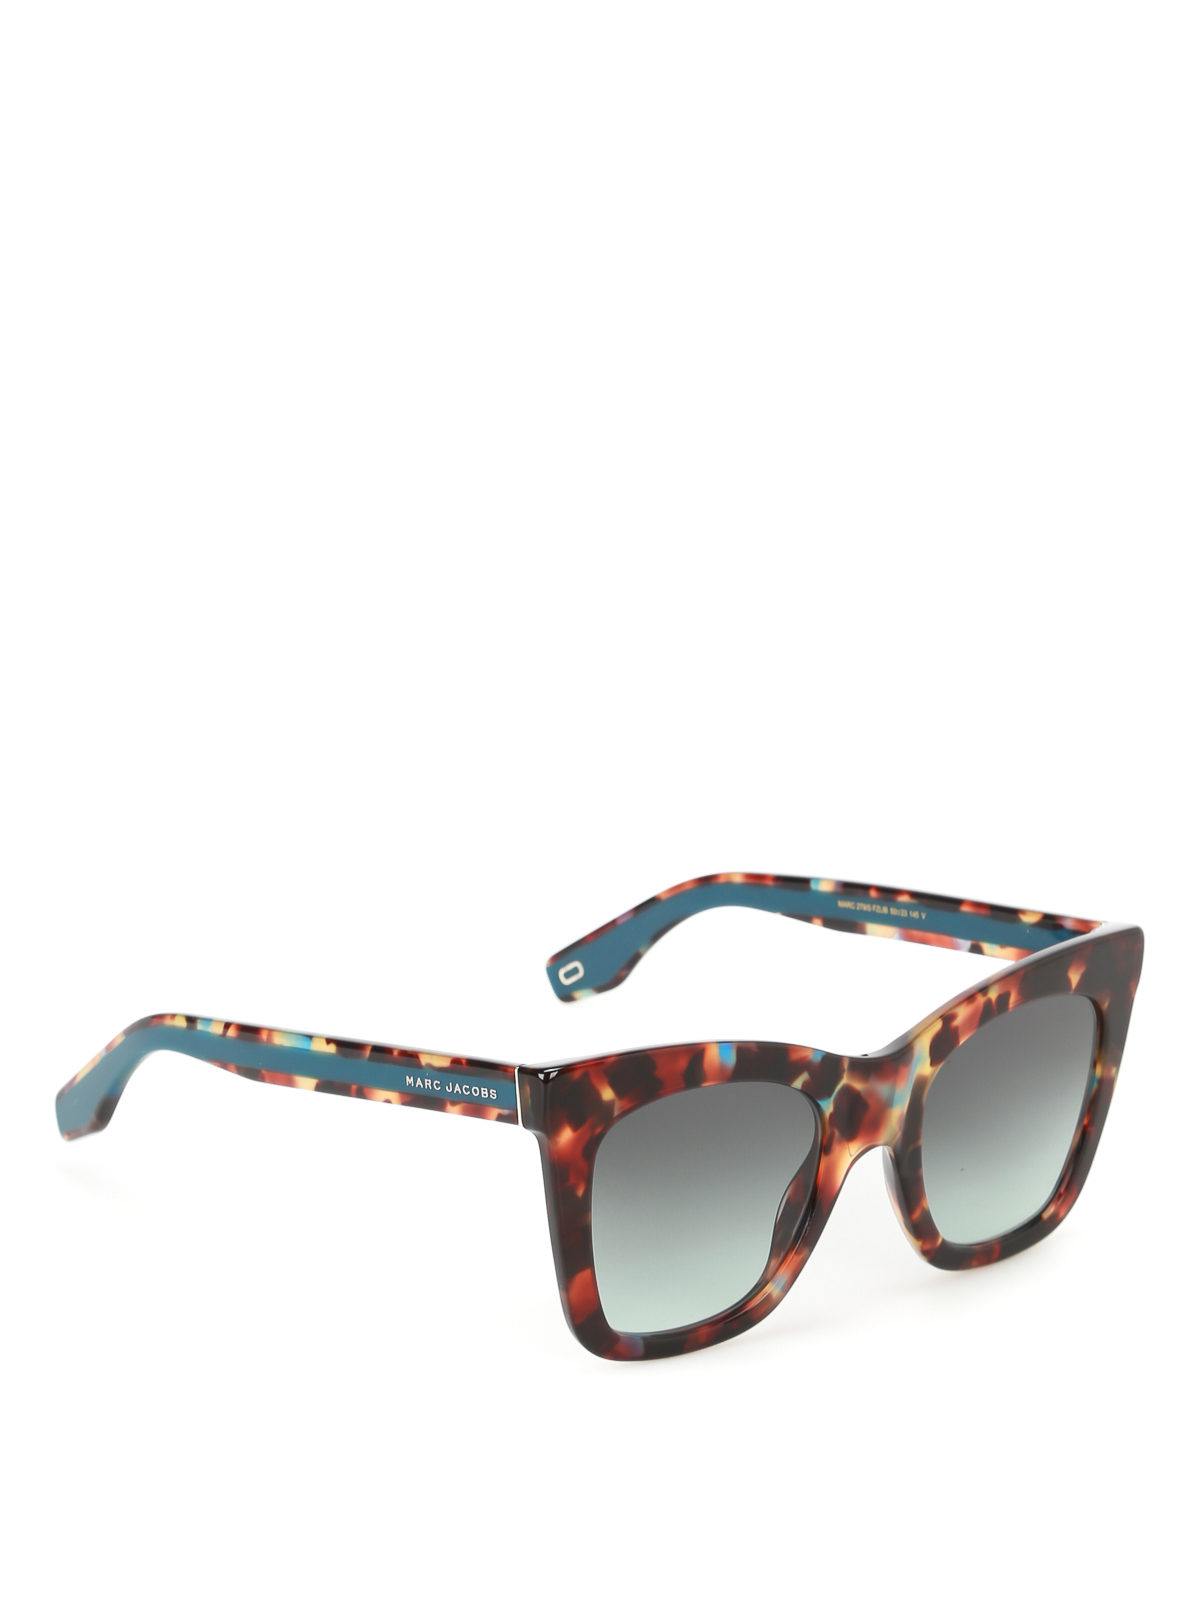 detailed look 28d68 1bf55 Marc Jacobs - Havana Turquoise squared sunglasses ...